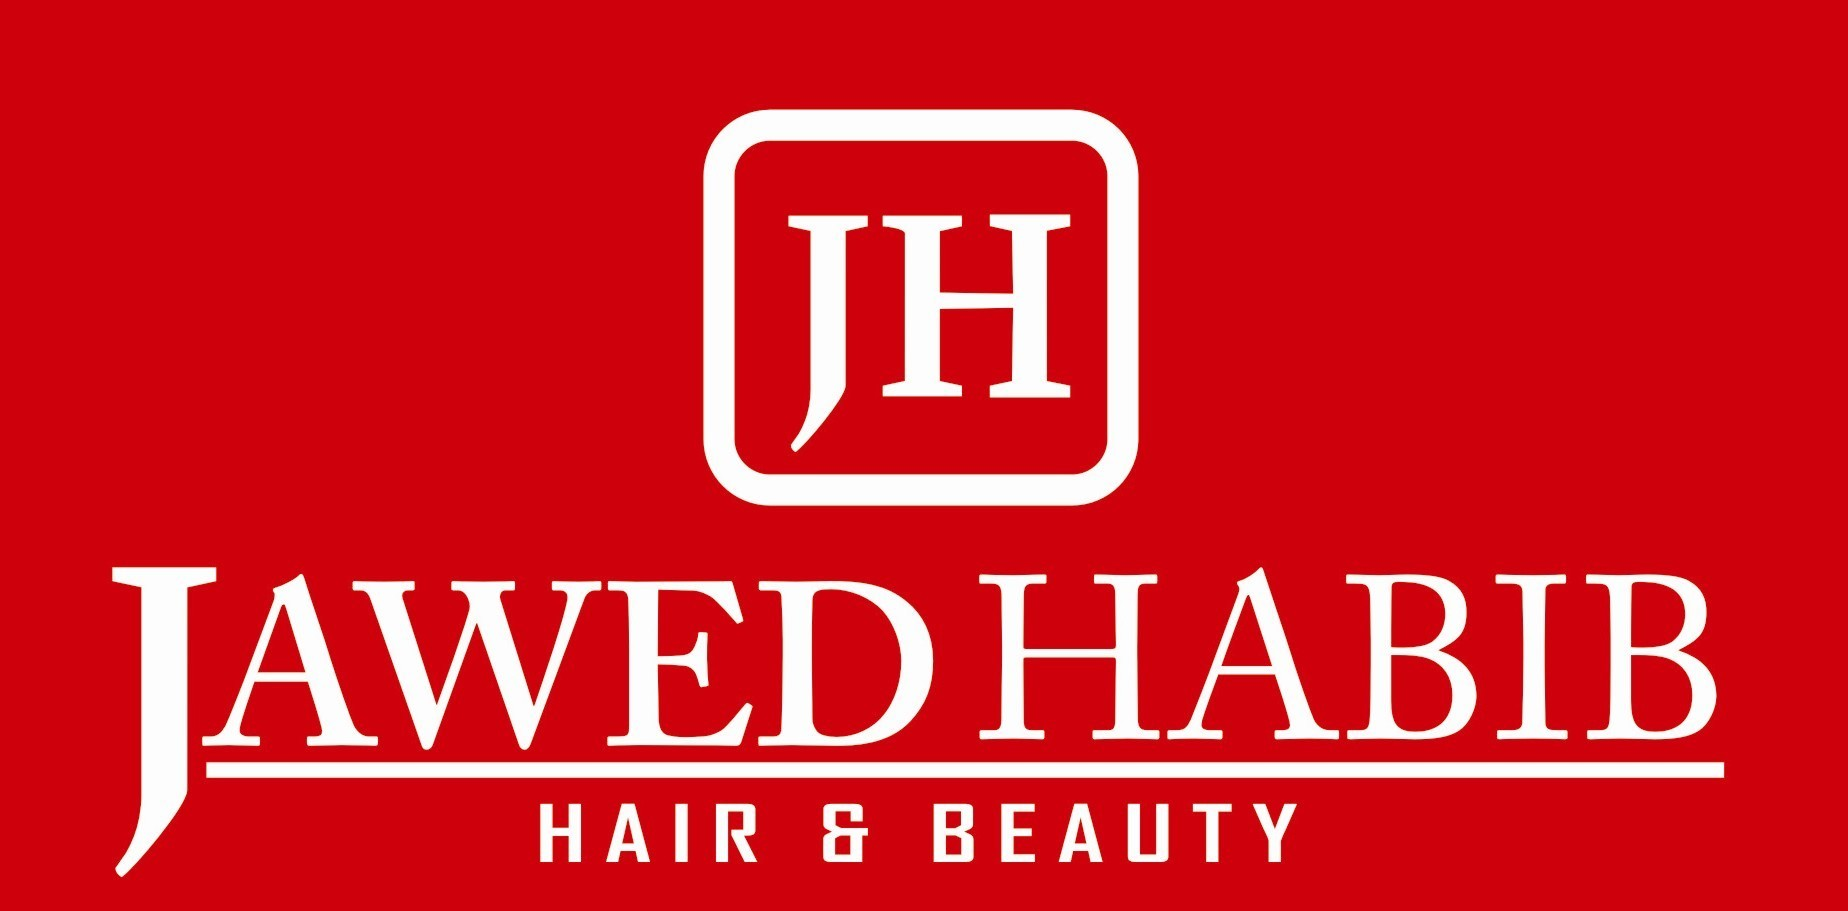 Jawed Habib Hair & Beauty Salons - Koramangala - Bangalore Image